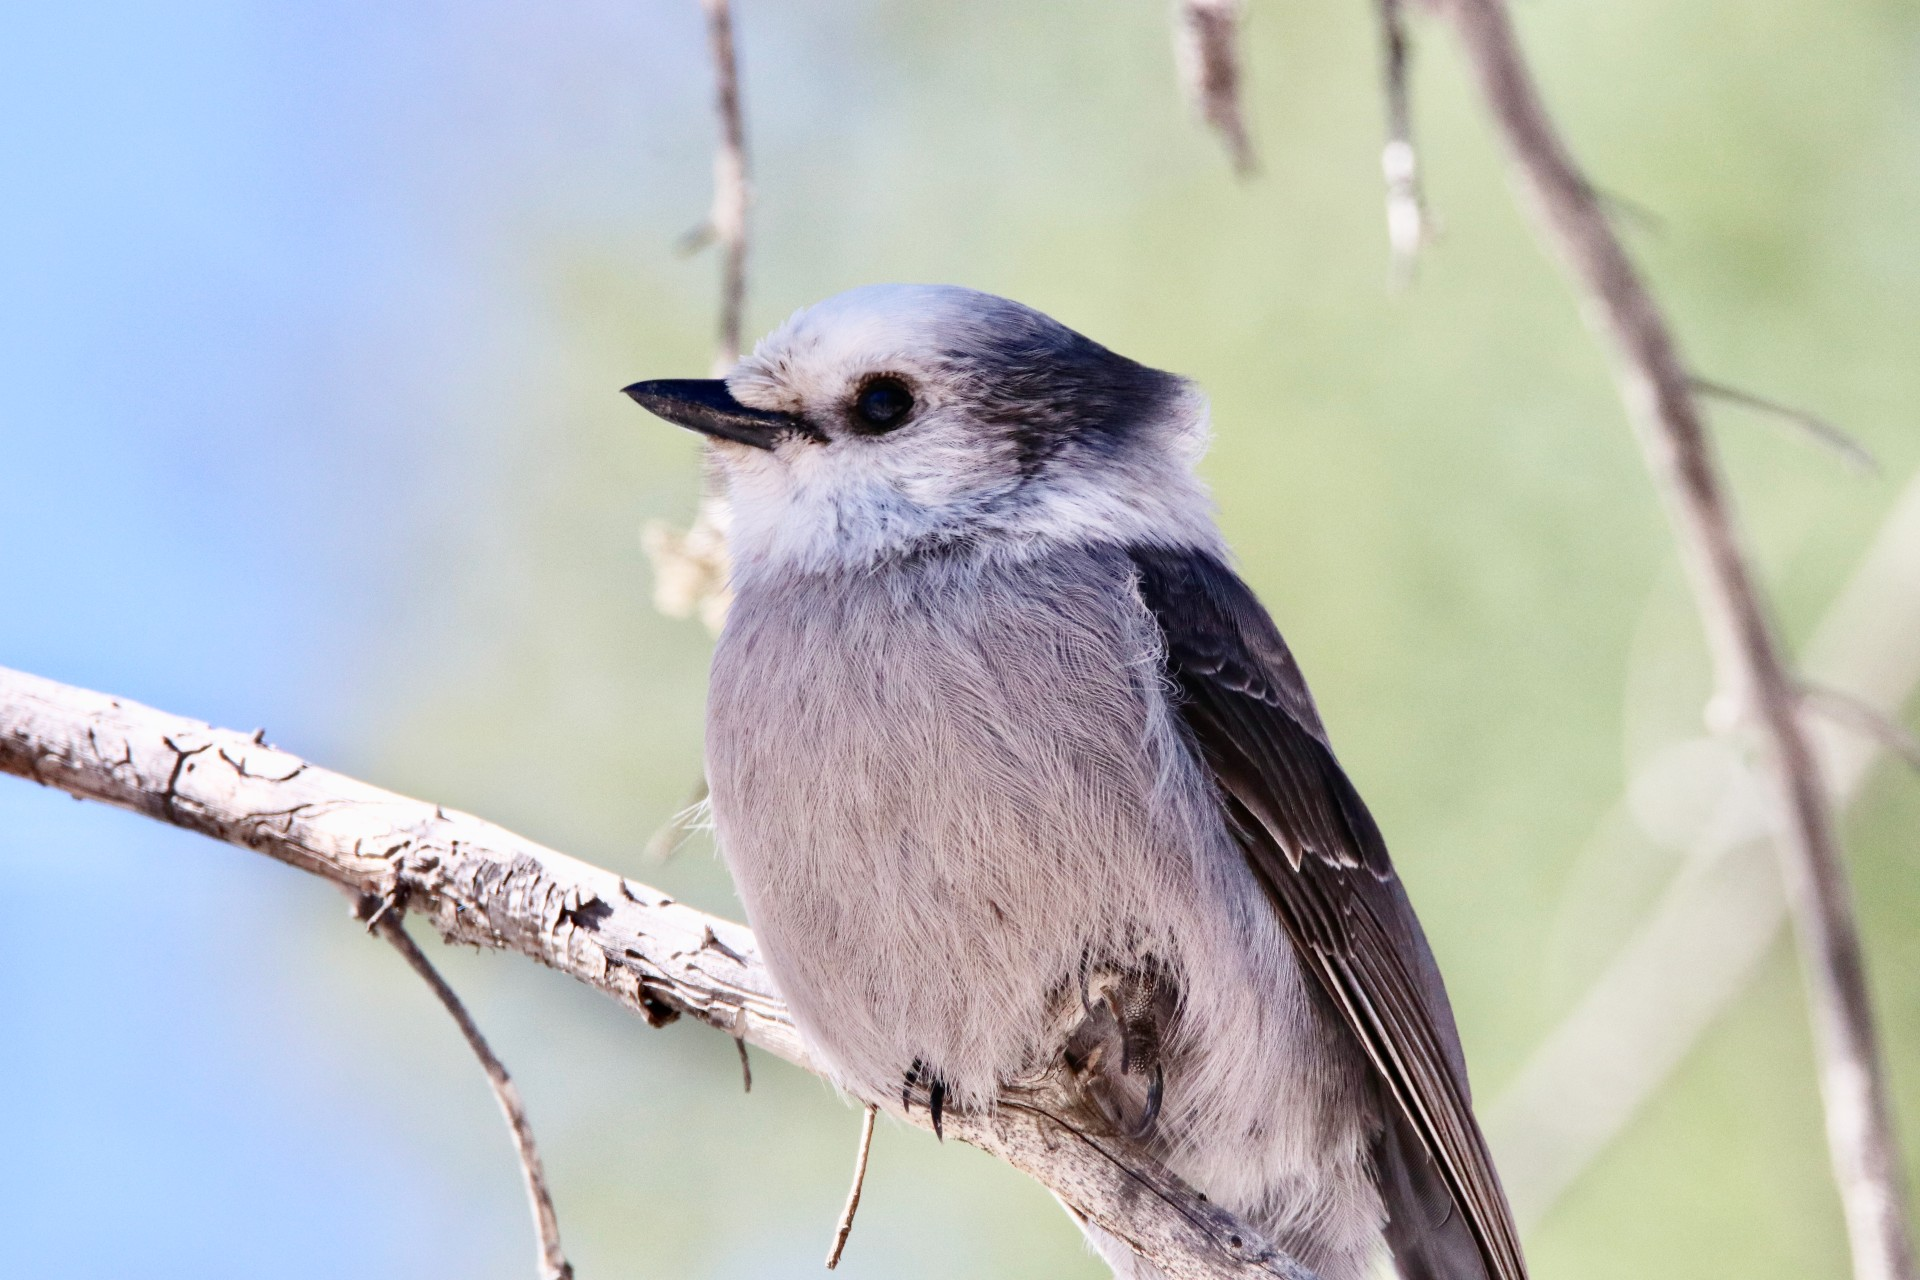 Canada Jay Photographed By Sara Turbyfill On The Bachelor Loop.